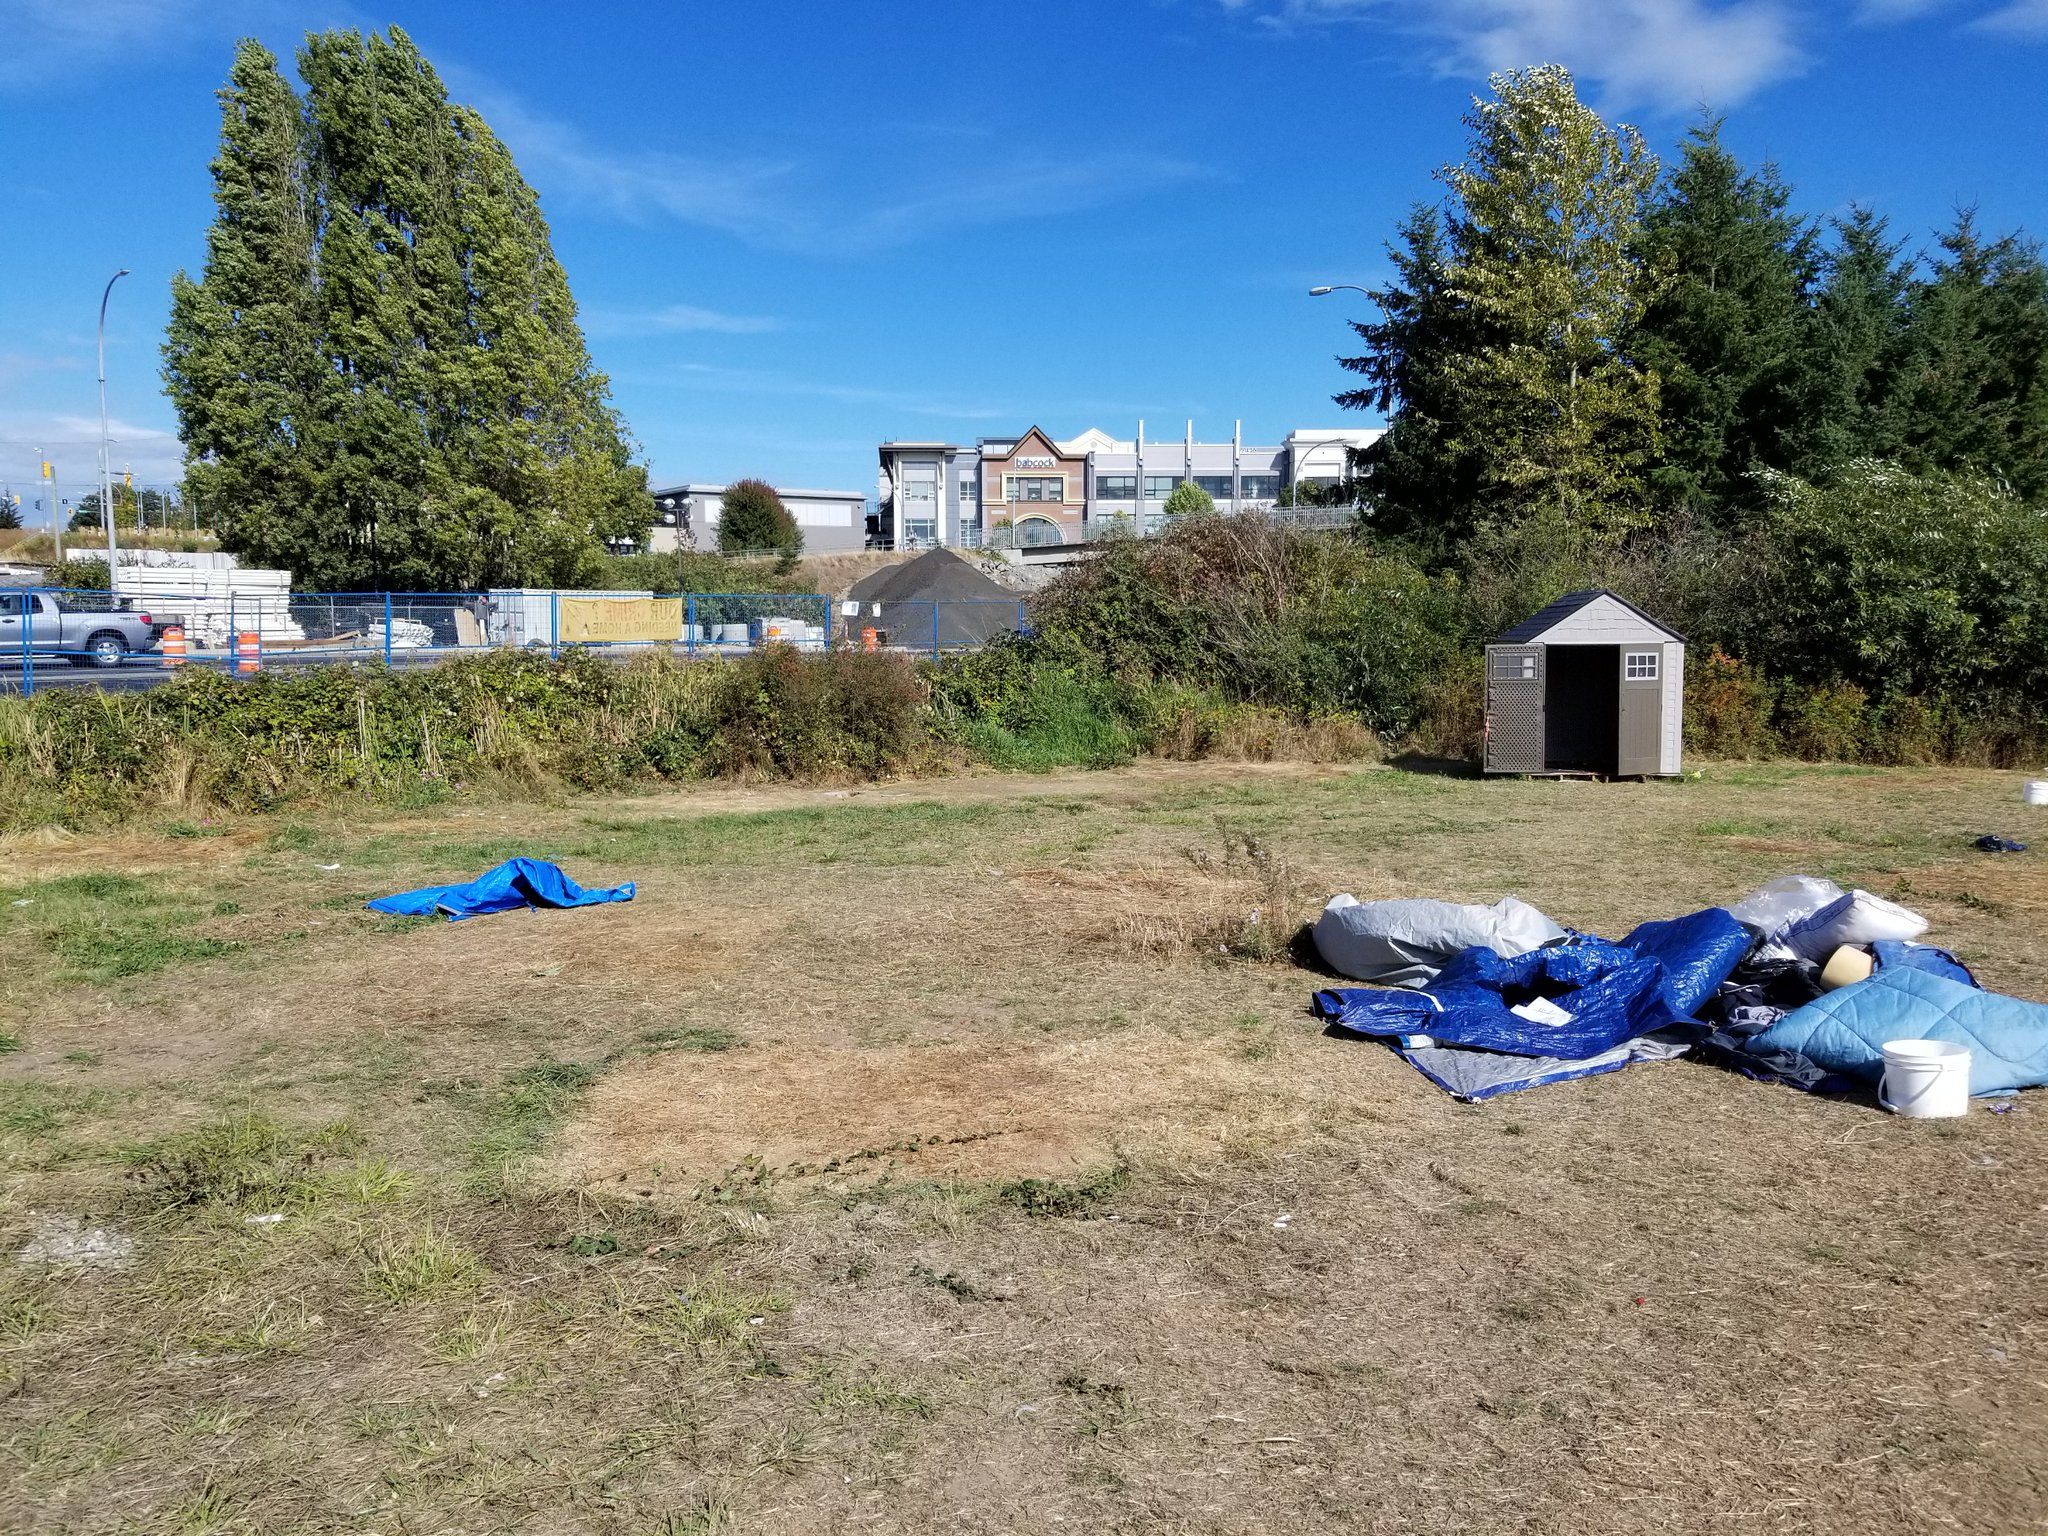 Saanich Police put clamps down on homeless camp